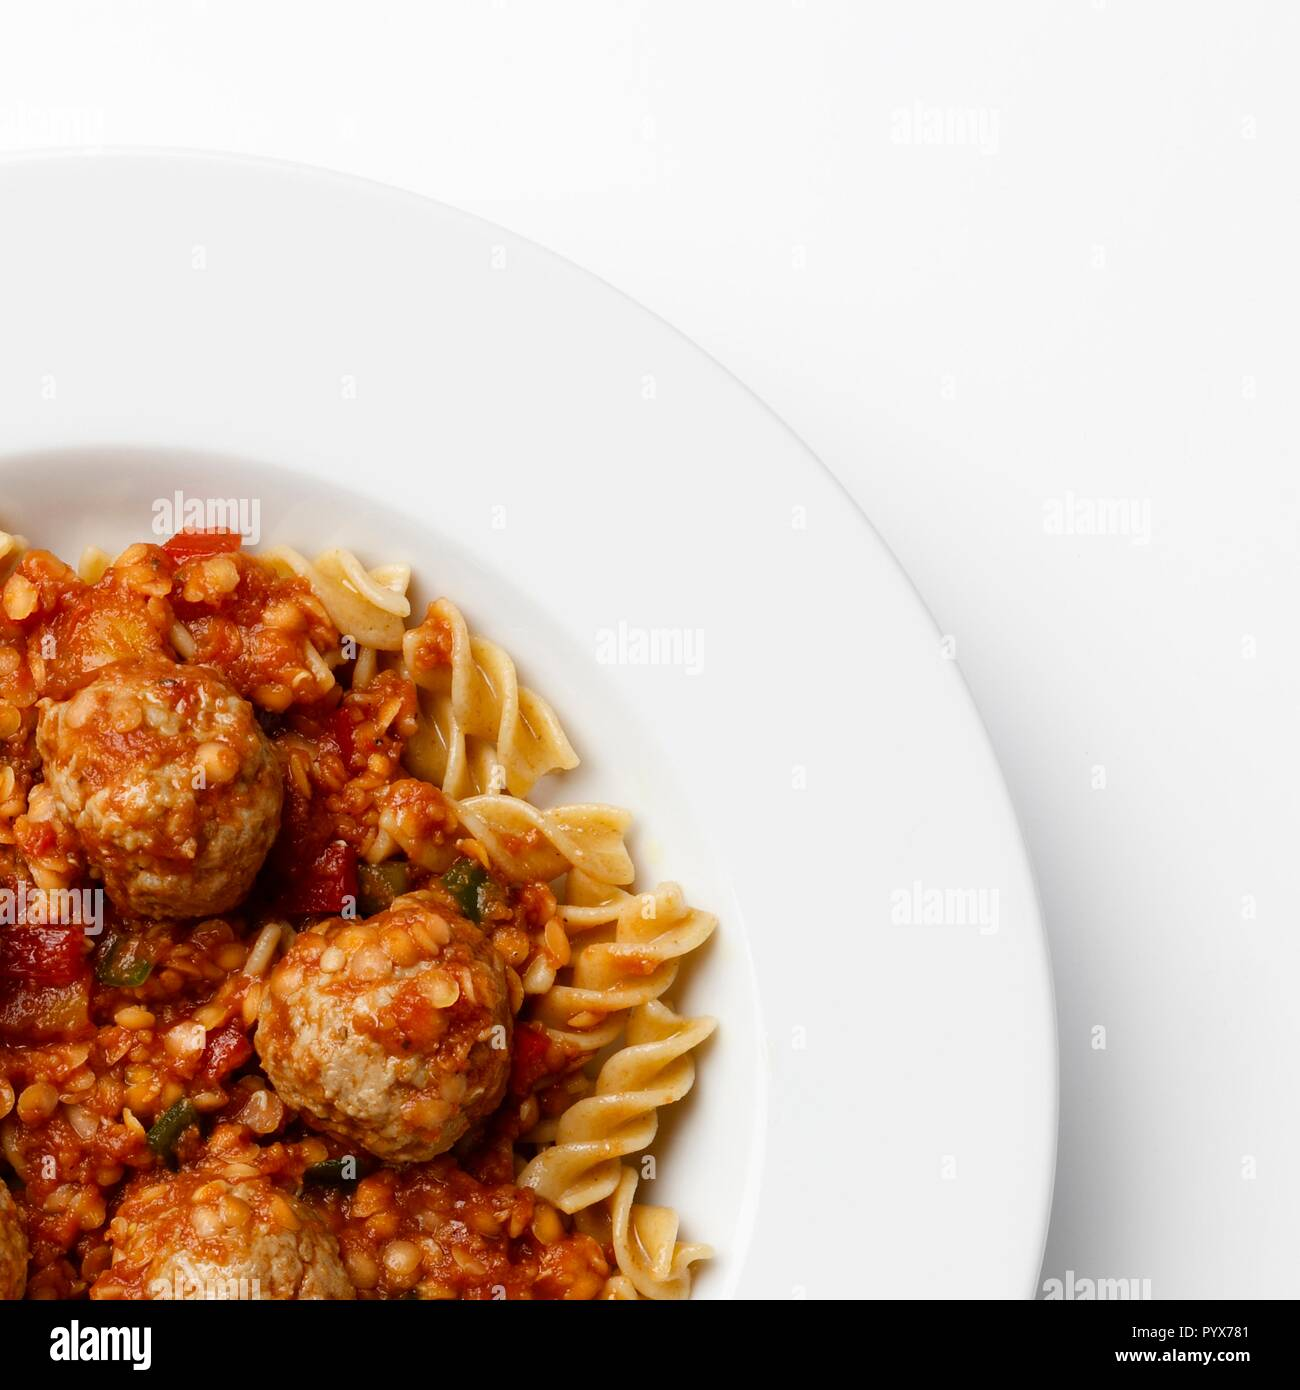 Corner of a plate of Meatballs in a tomato sause with paste twists, on a white background. Stock Photo